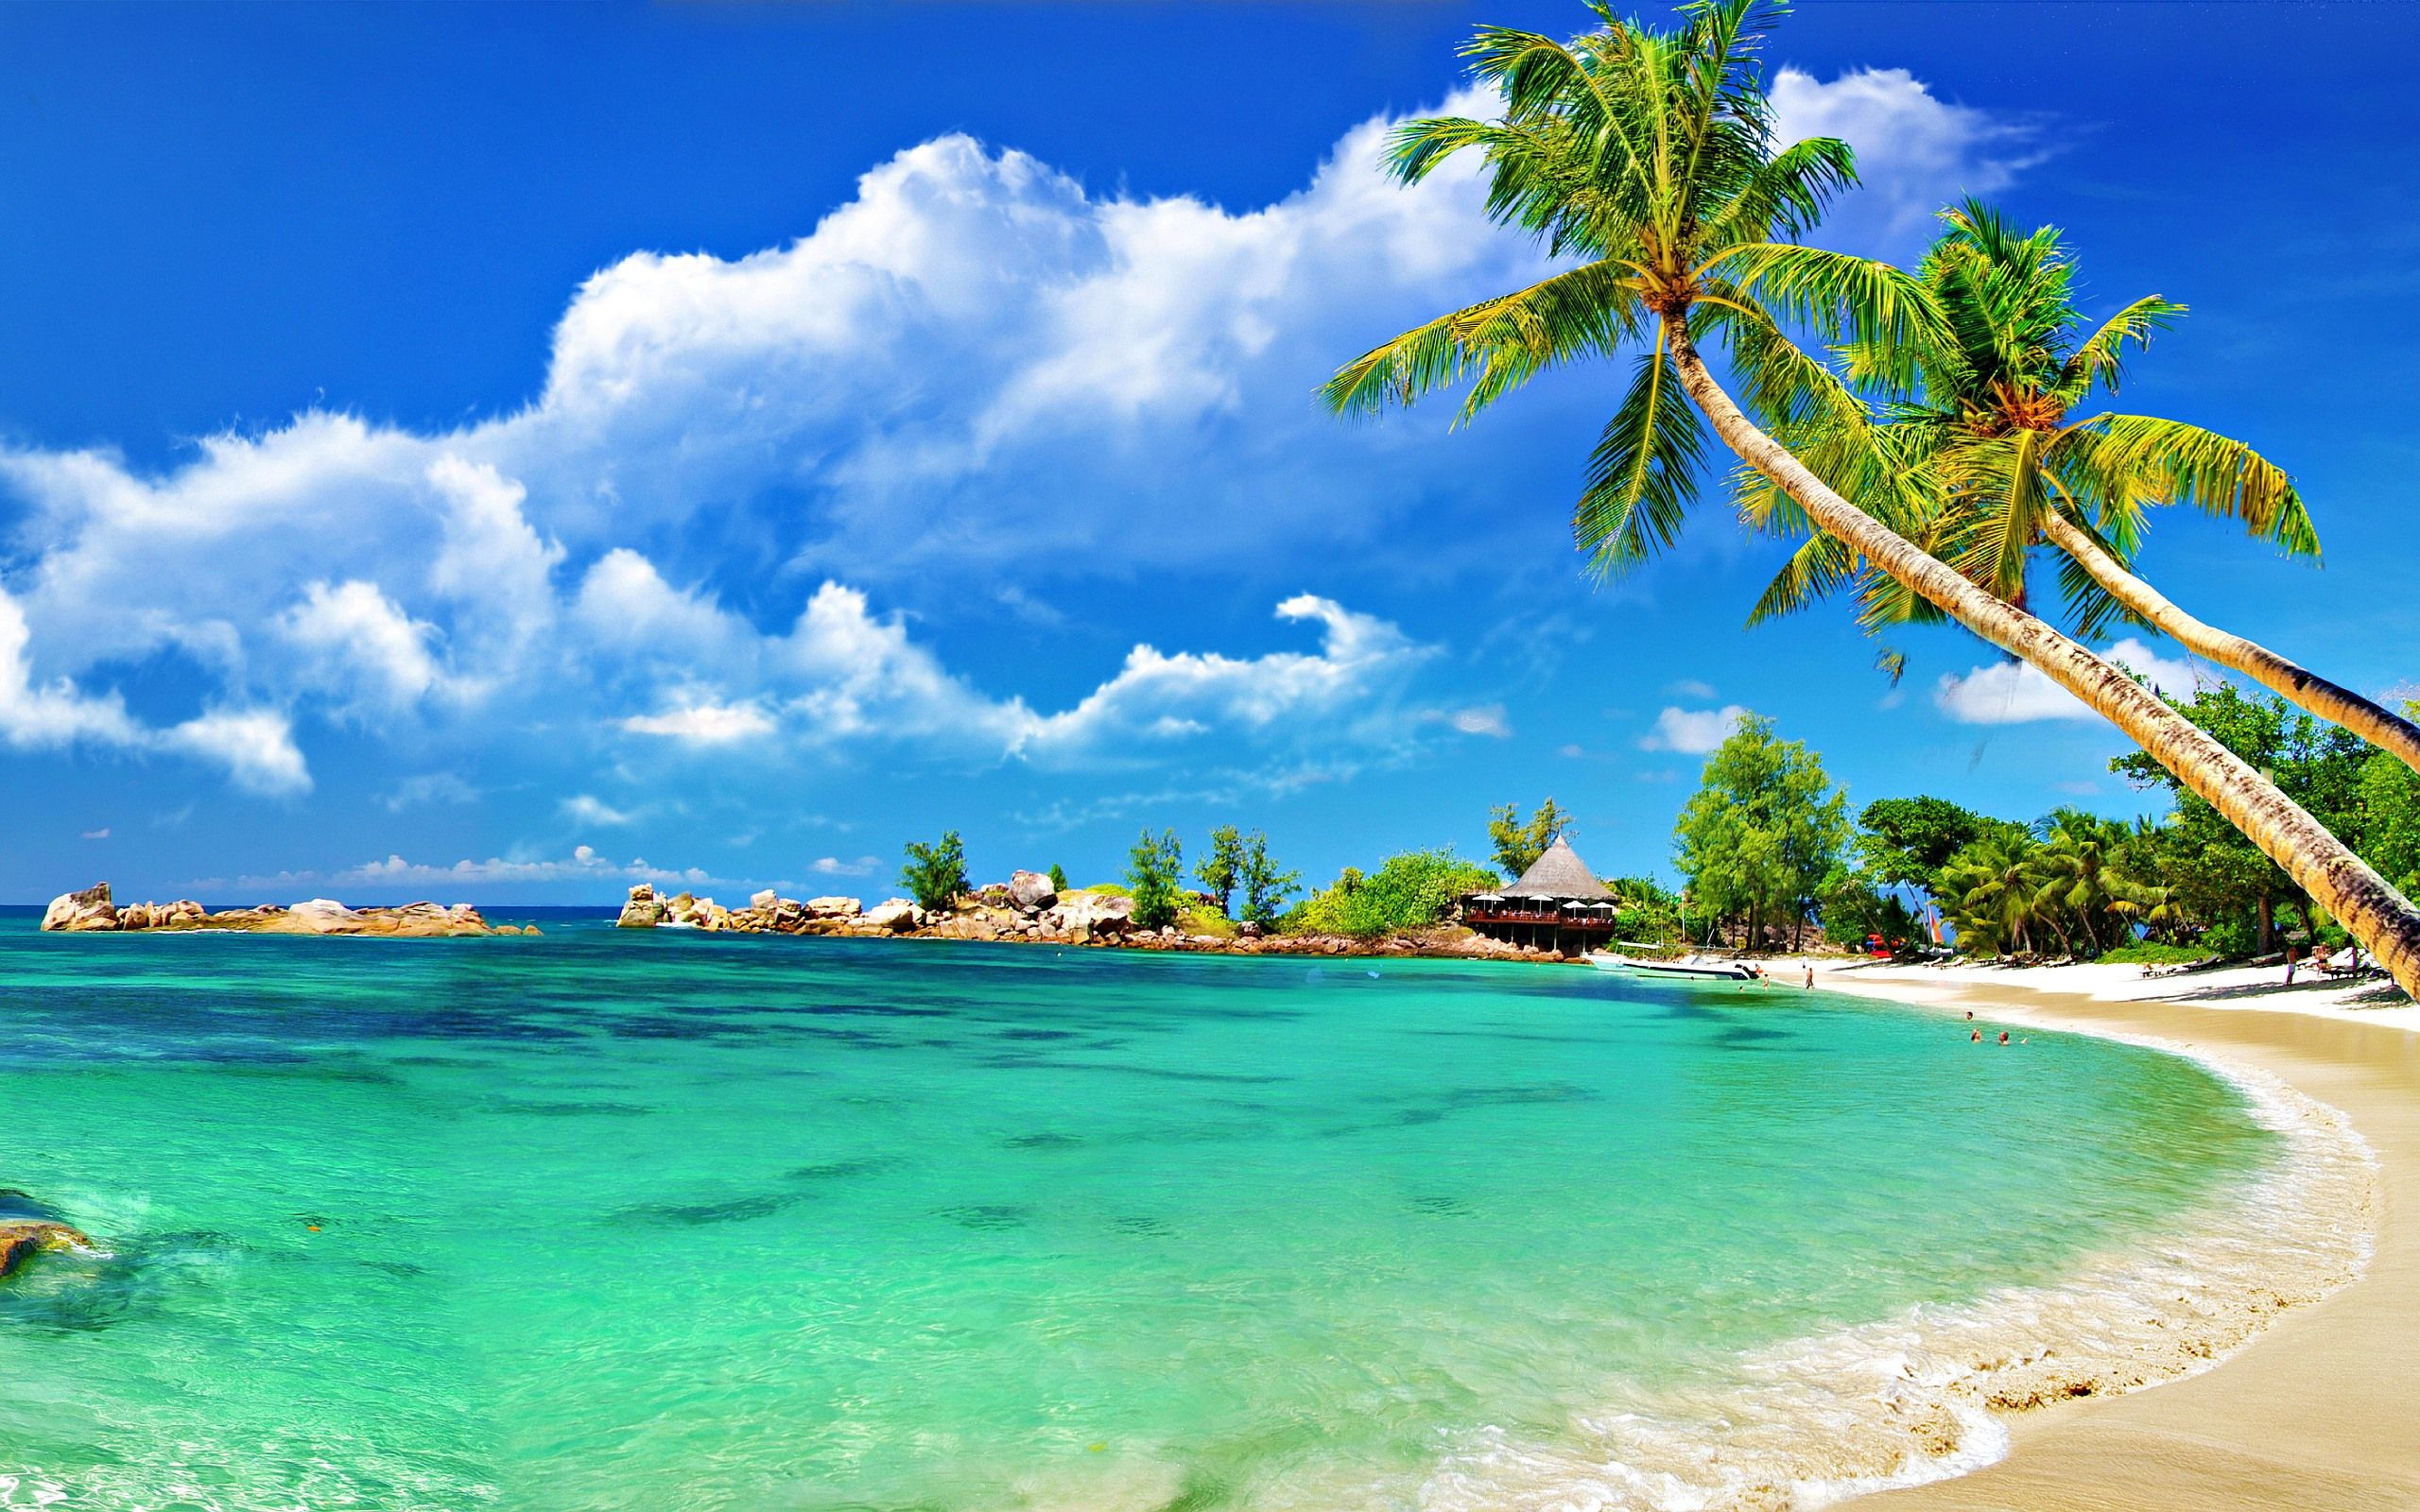 Hd wallpaper beach - 50 Amazing Beach Wallpapers Free To Download